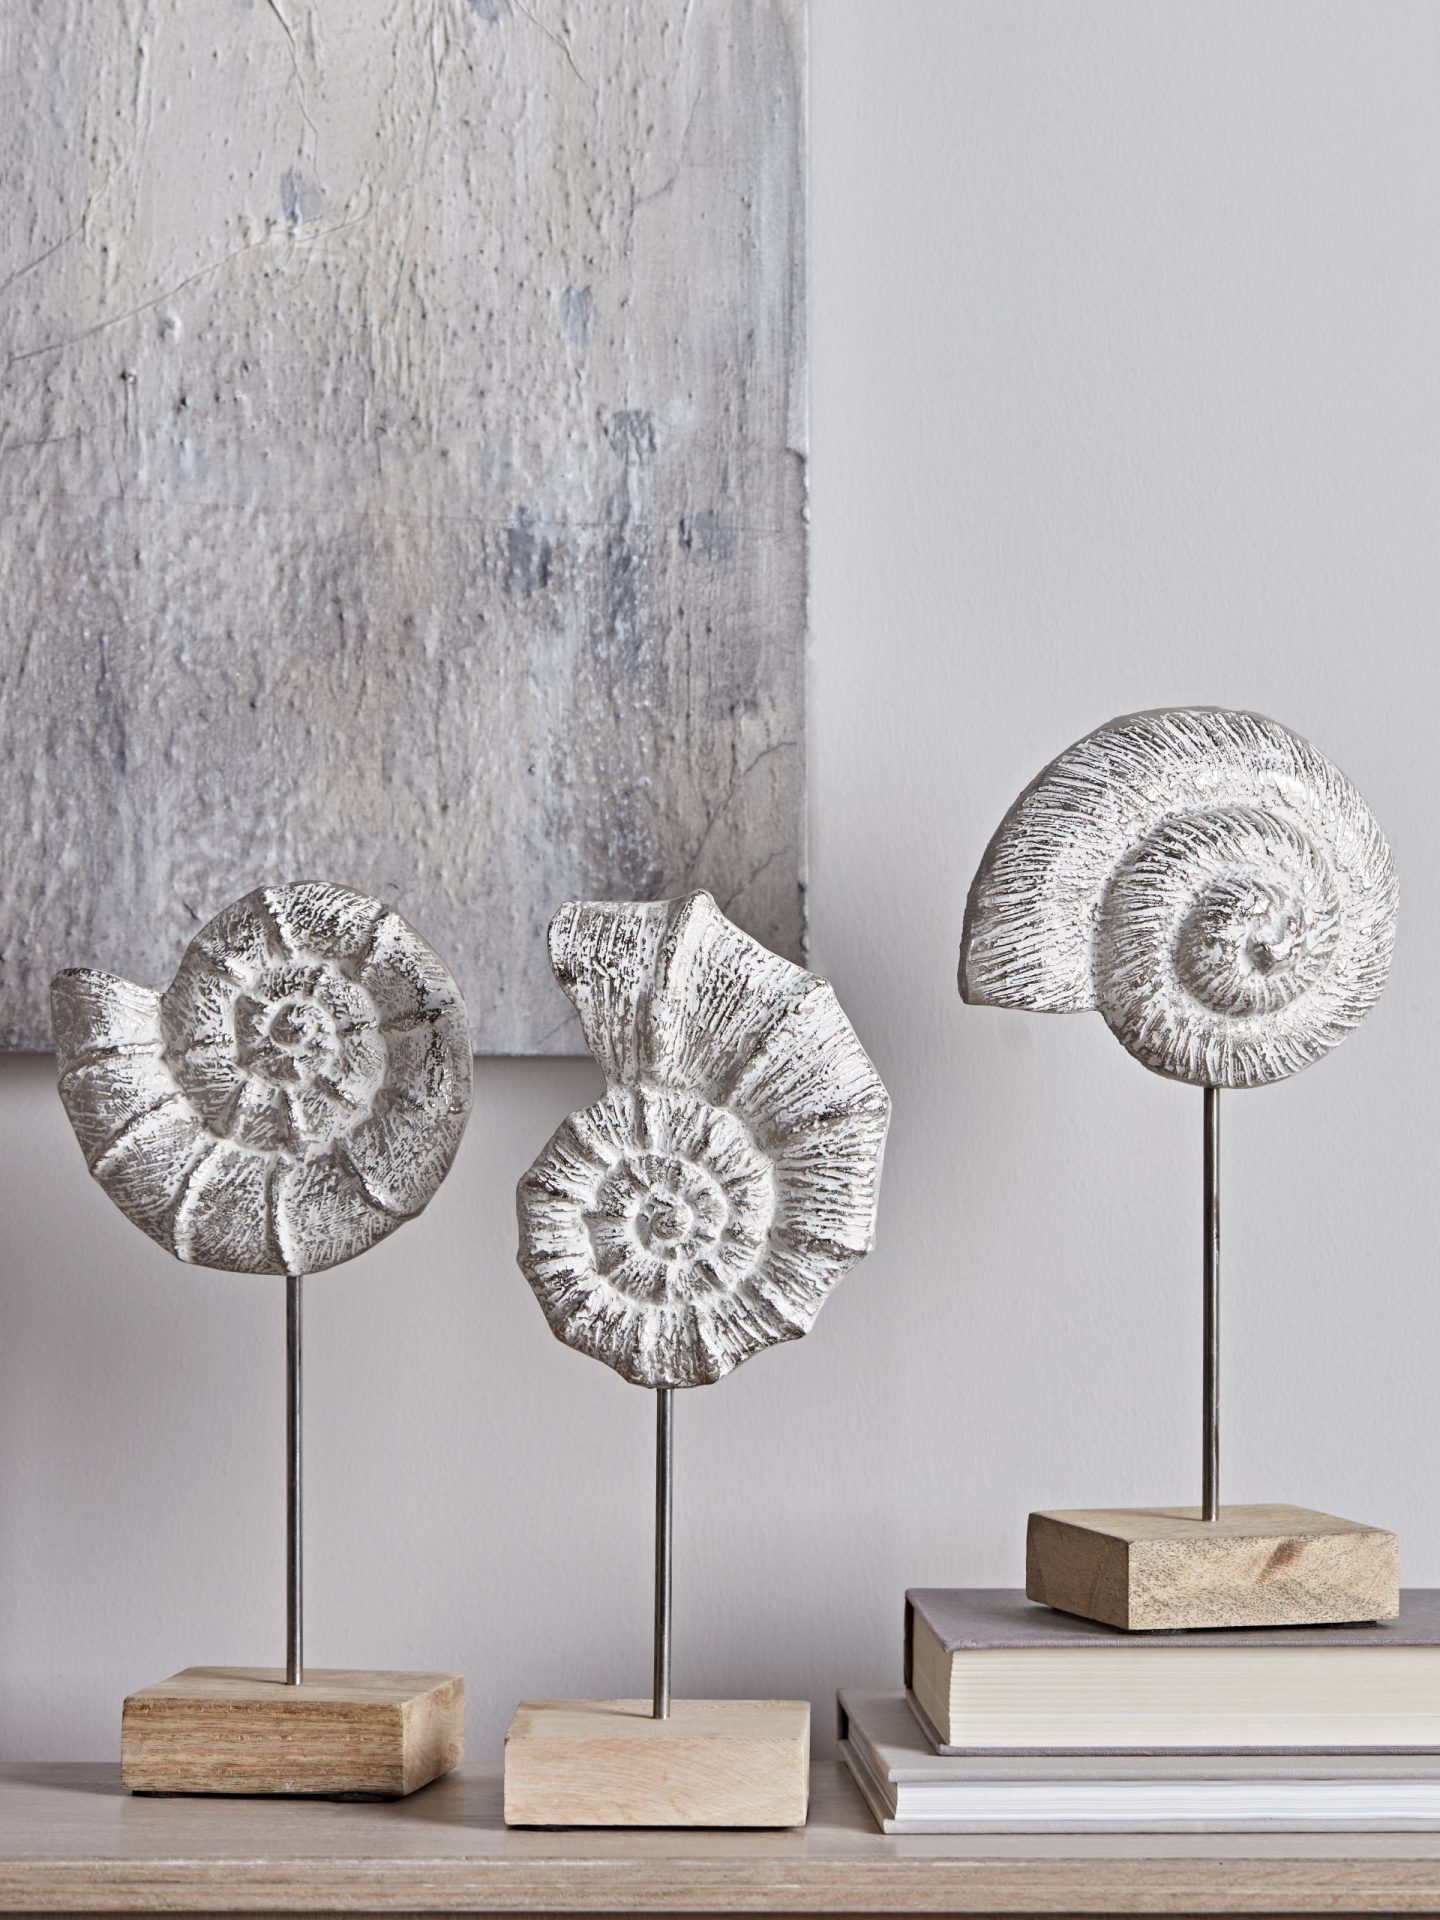 Three standing ammonite ornaments by Cox and Cox.